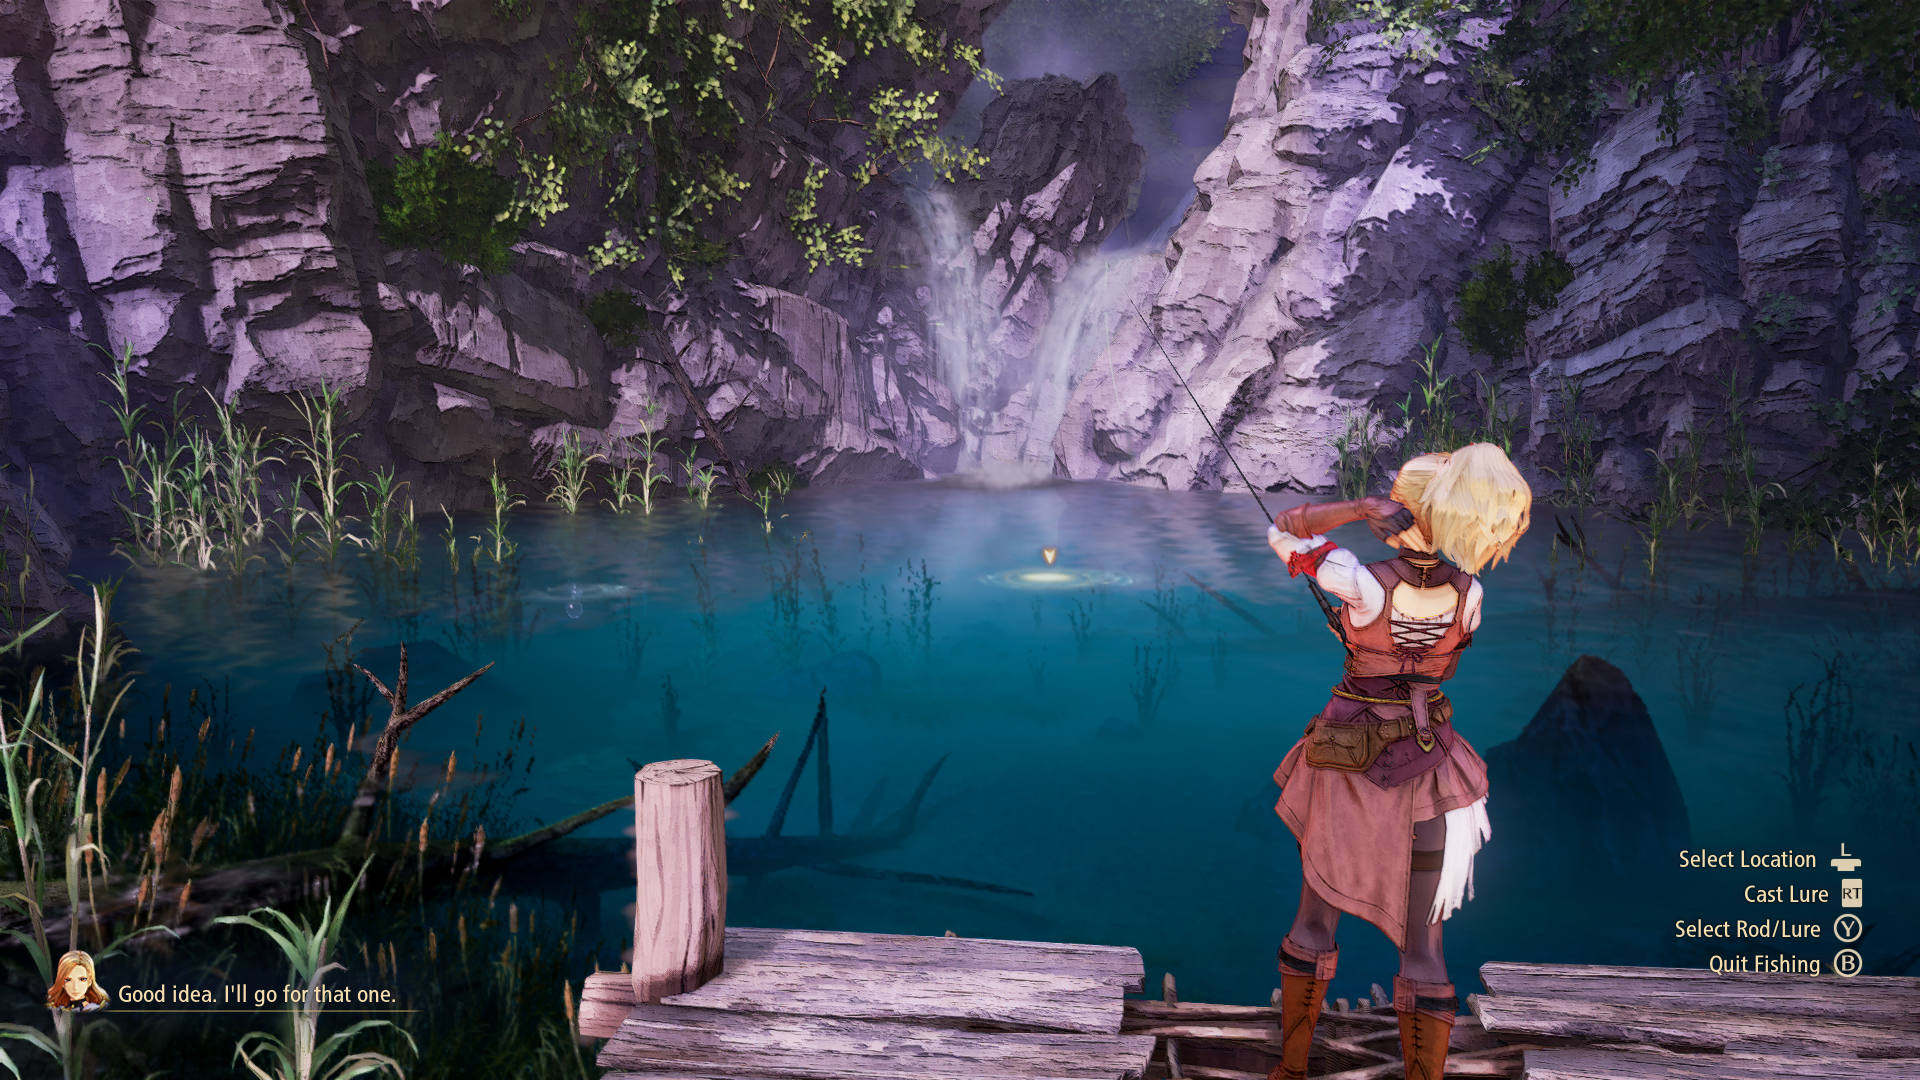 tales-of-arise-how-to-fish-phase-2